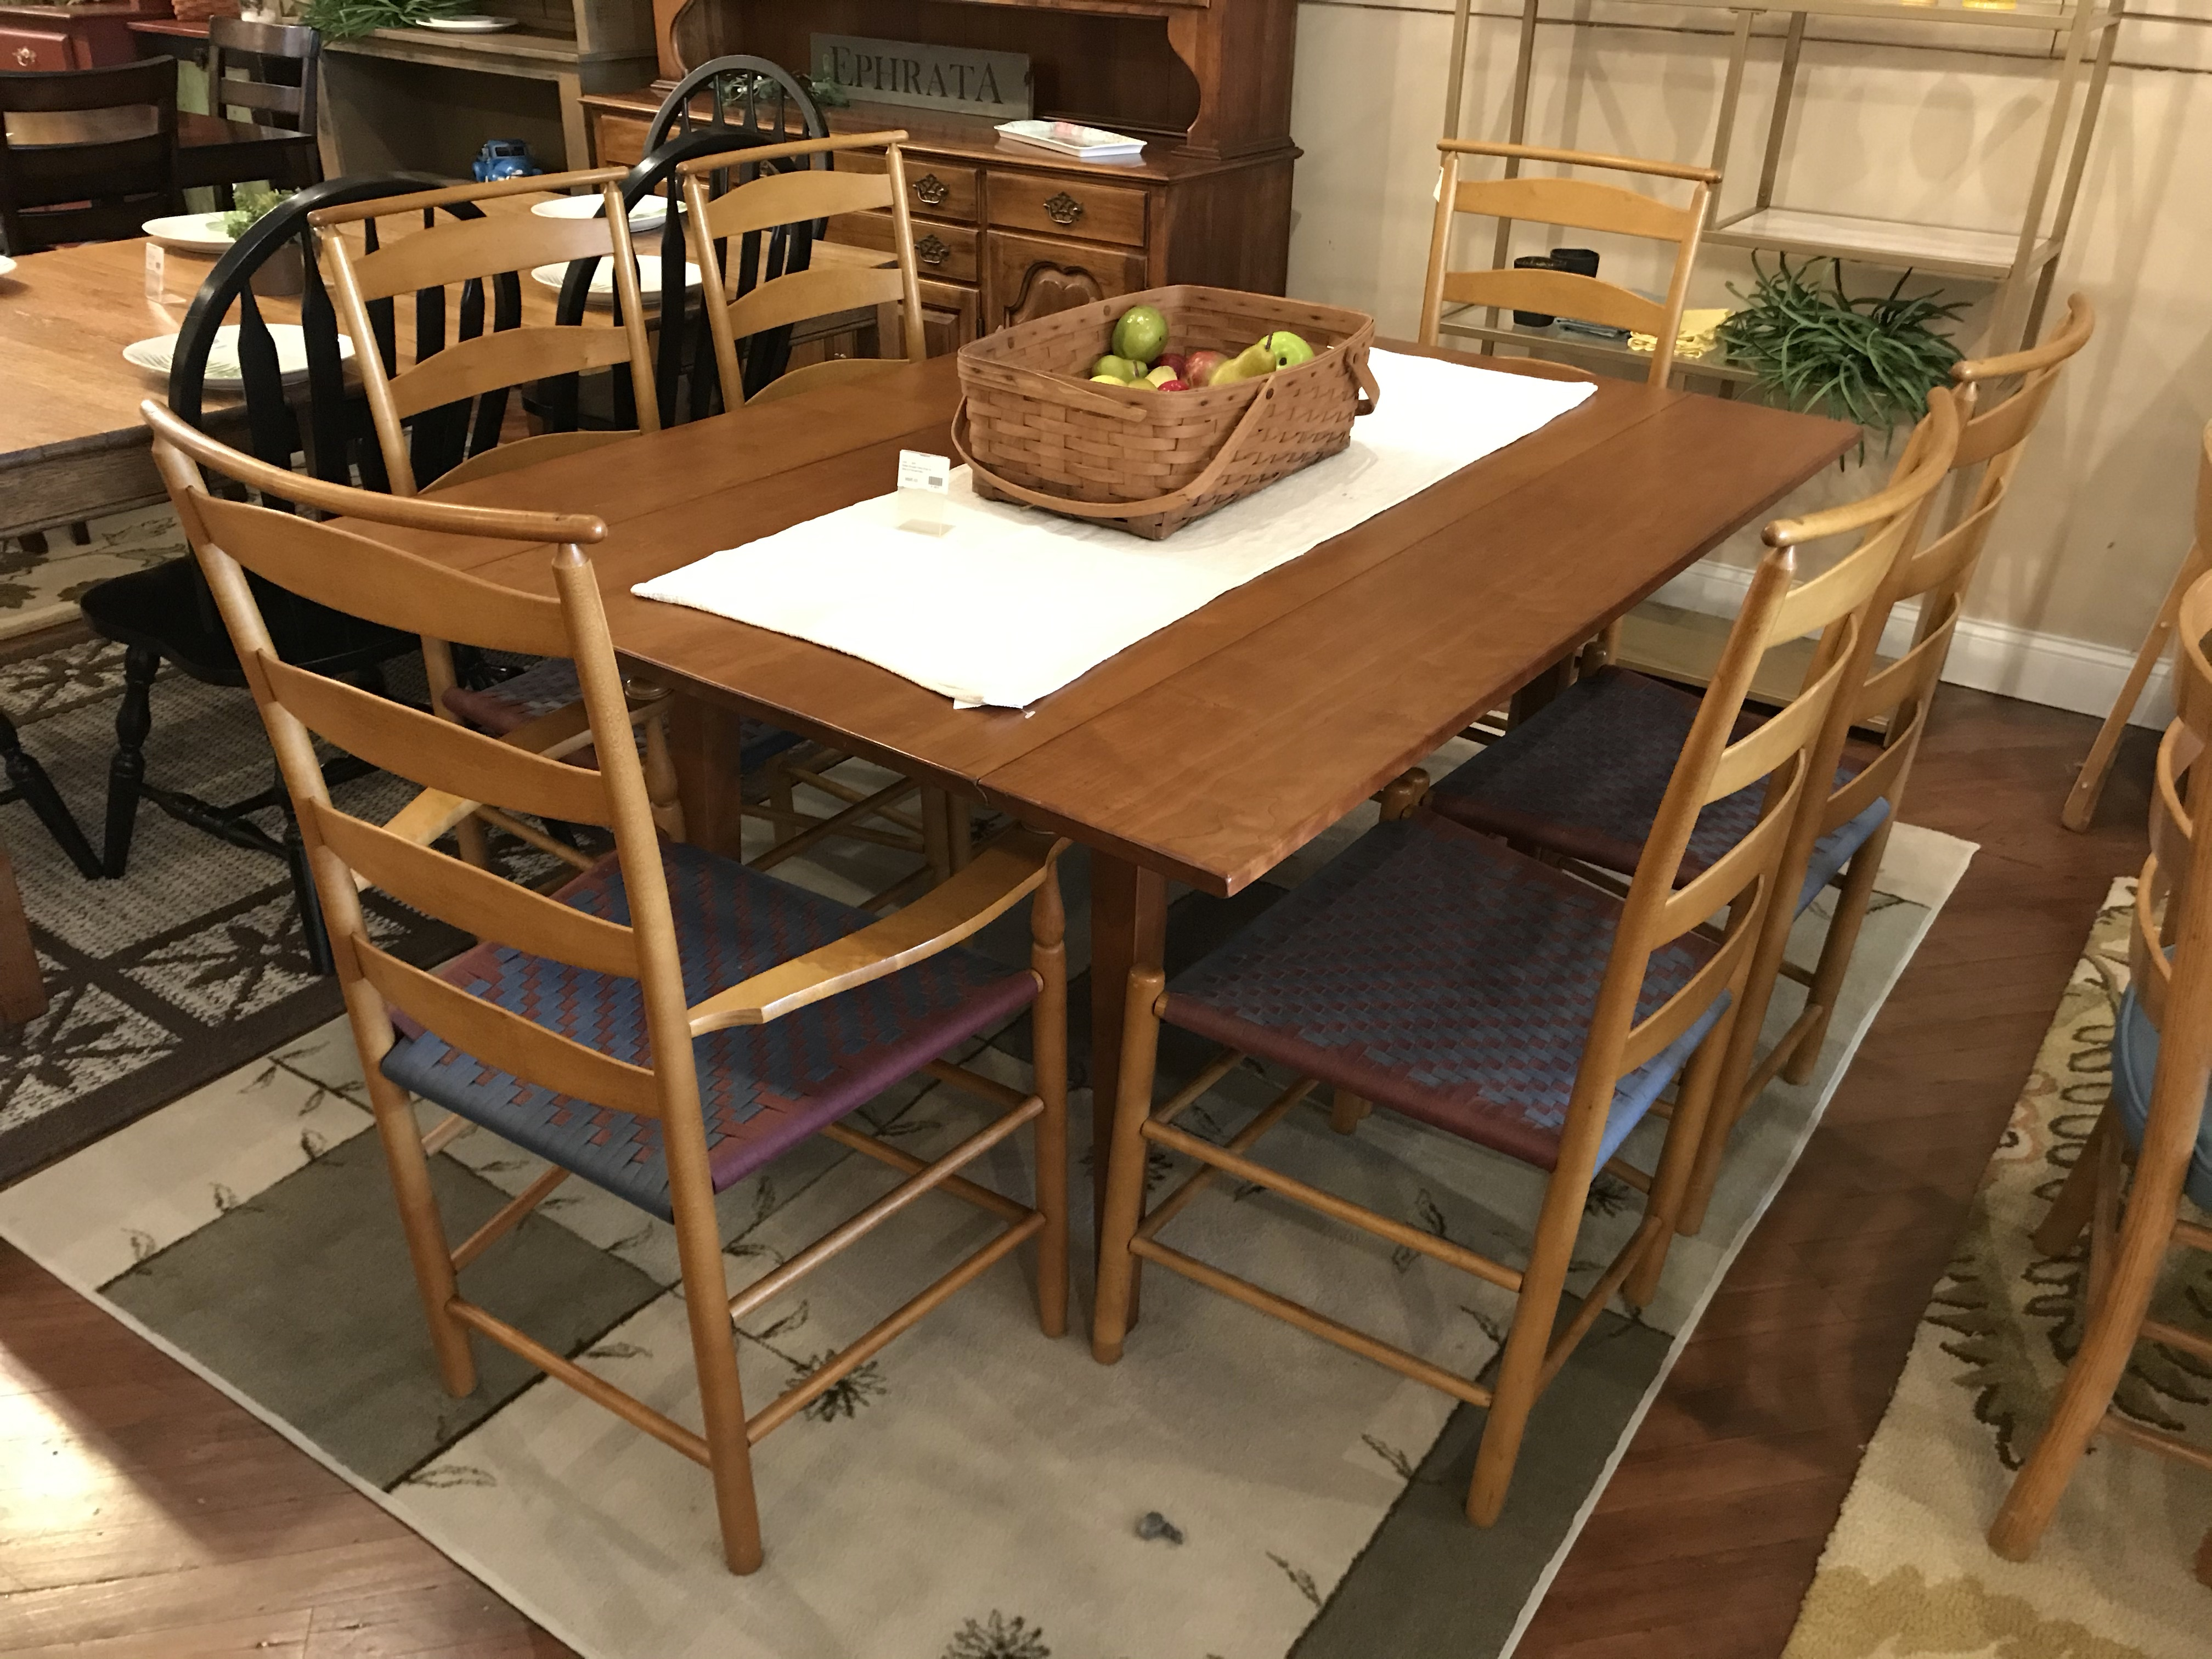 SHAKER SHOPPE CHERRY DROP LEAF TABLE & 6 CHAIRS